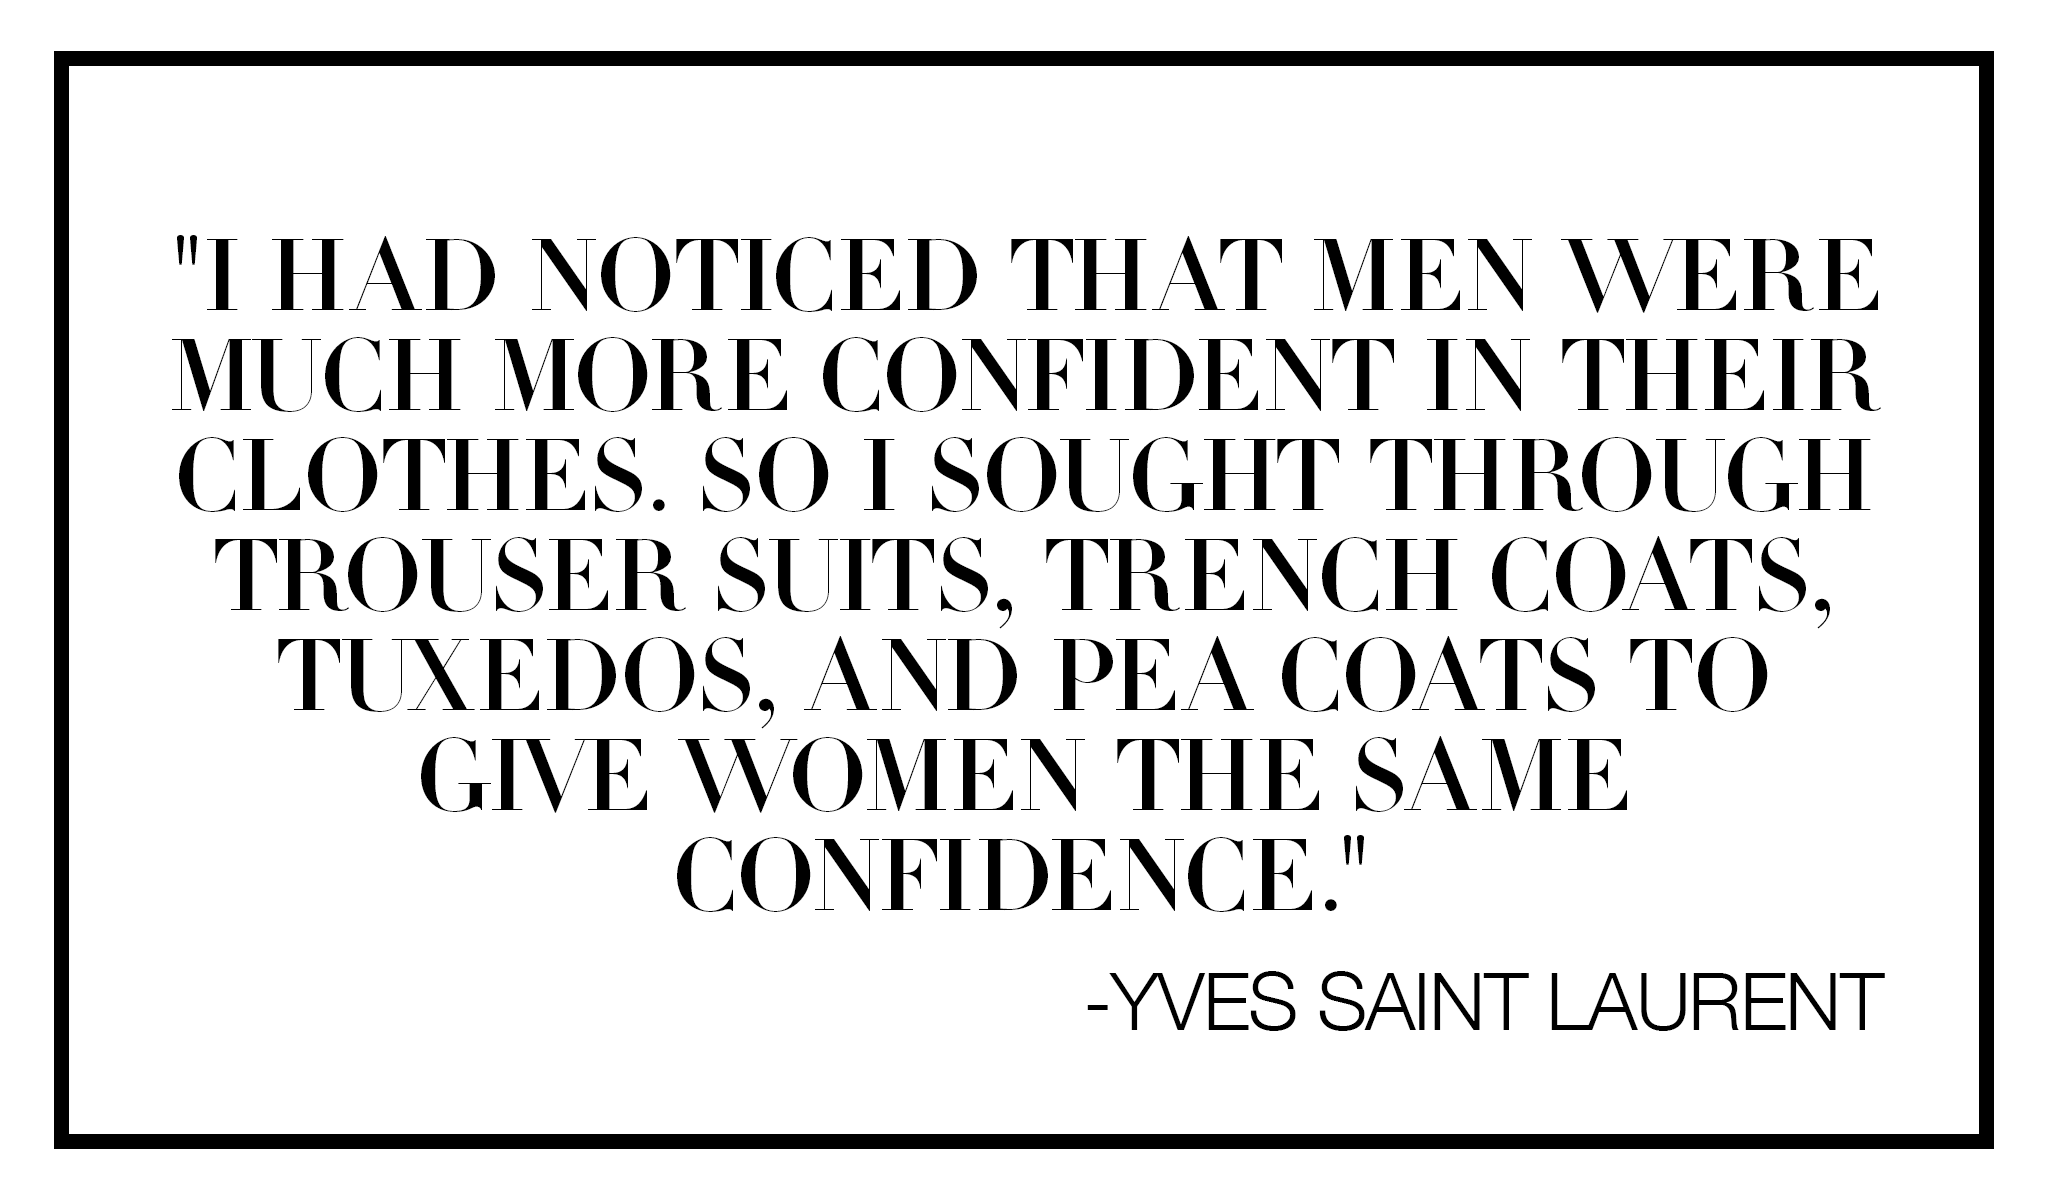 Dress Code Recess Los Angeles Yves Saint Laurent YSL QUOTES tuxedo